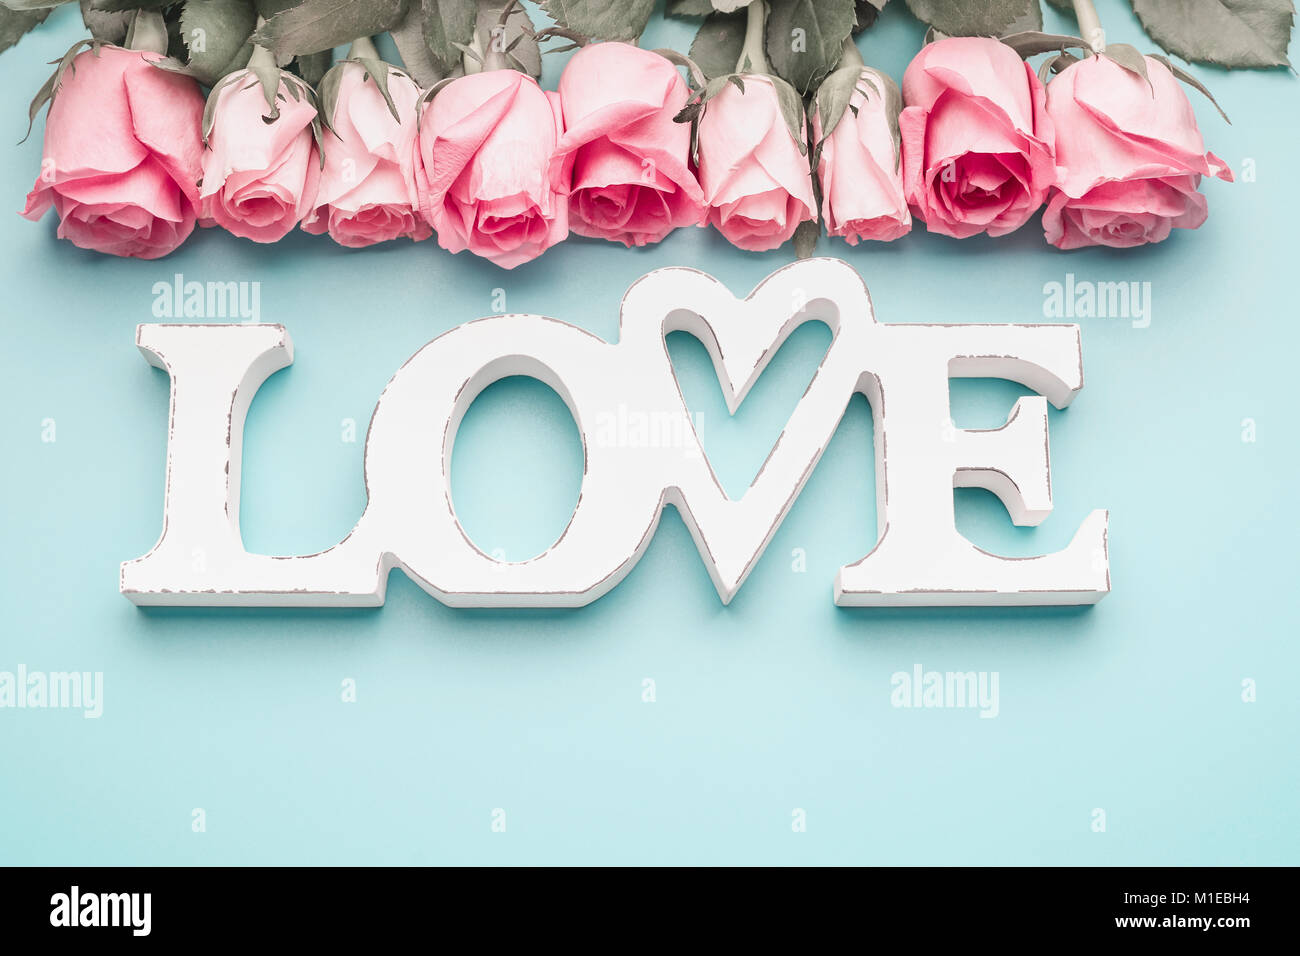 White Word Love With Pastel Pink Roses On Turquoise Blue Background